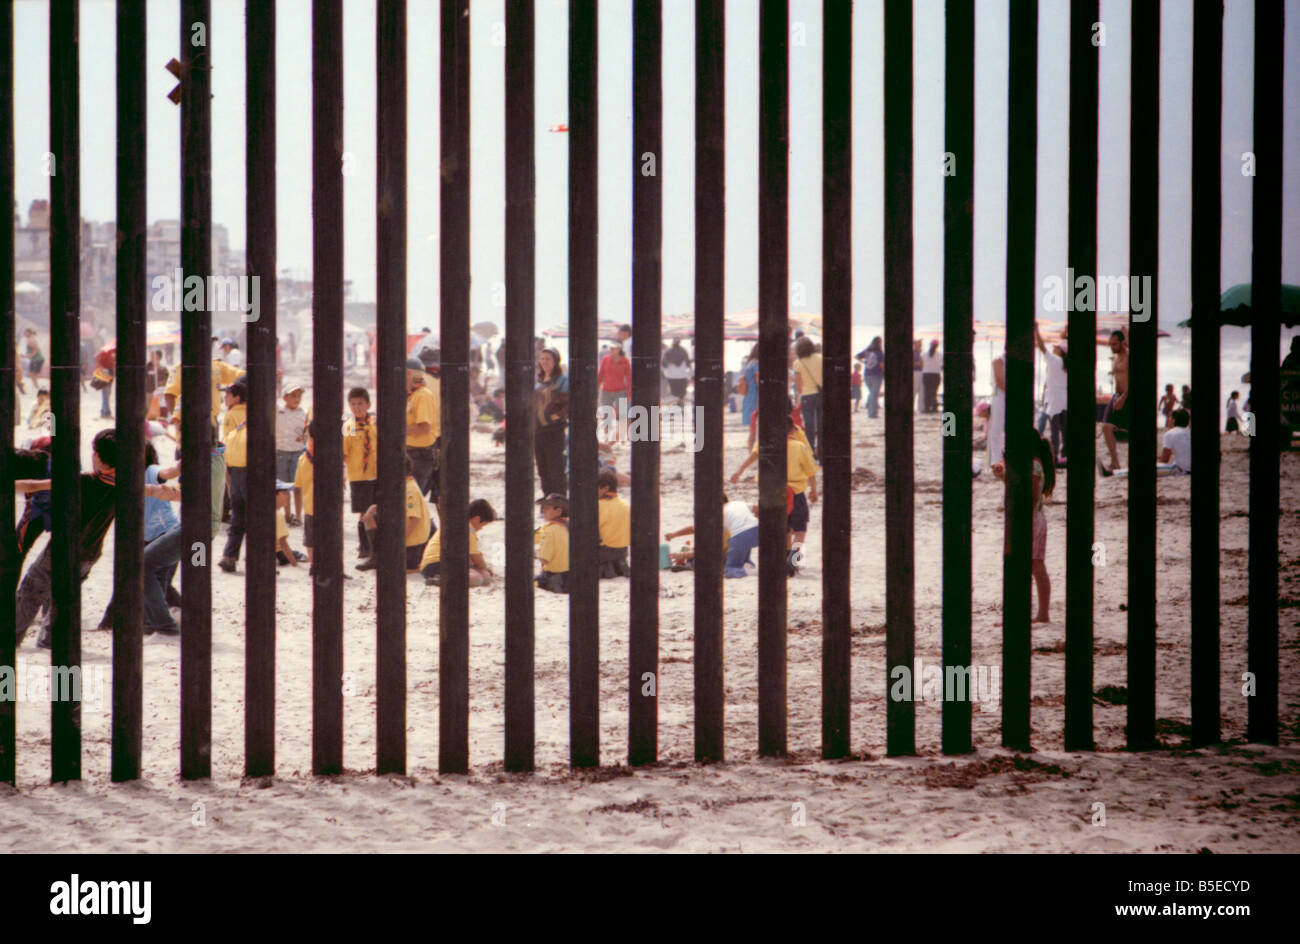 The fence and people in Mexico at the International Border at Border Field State Park. - Stock Image